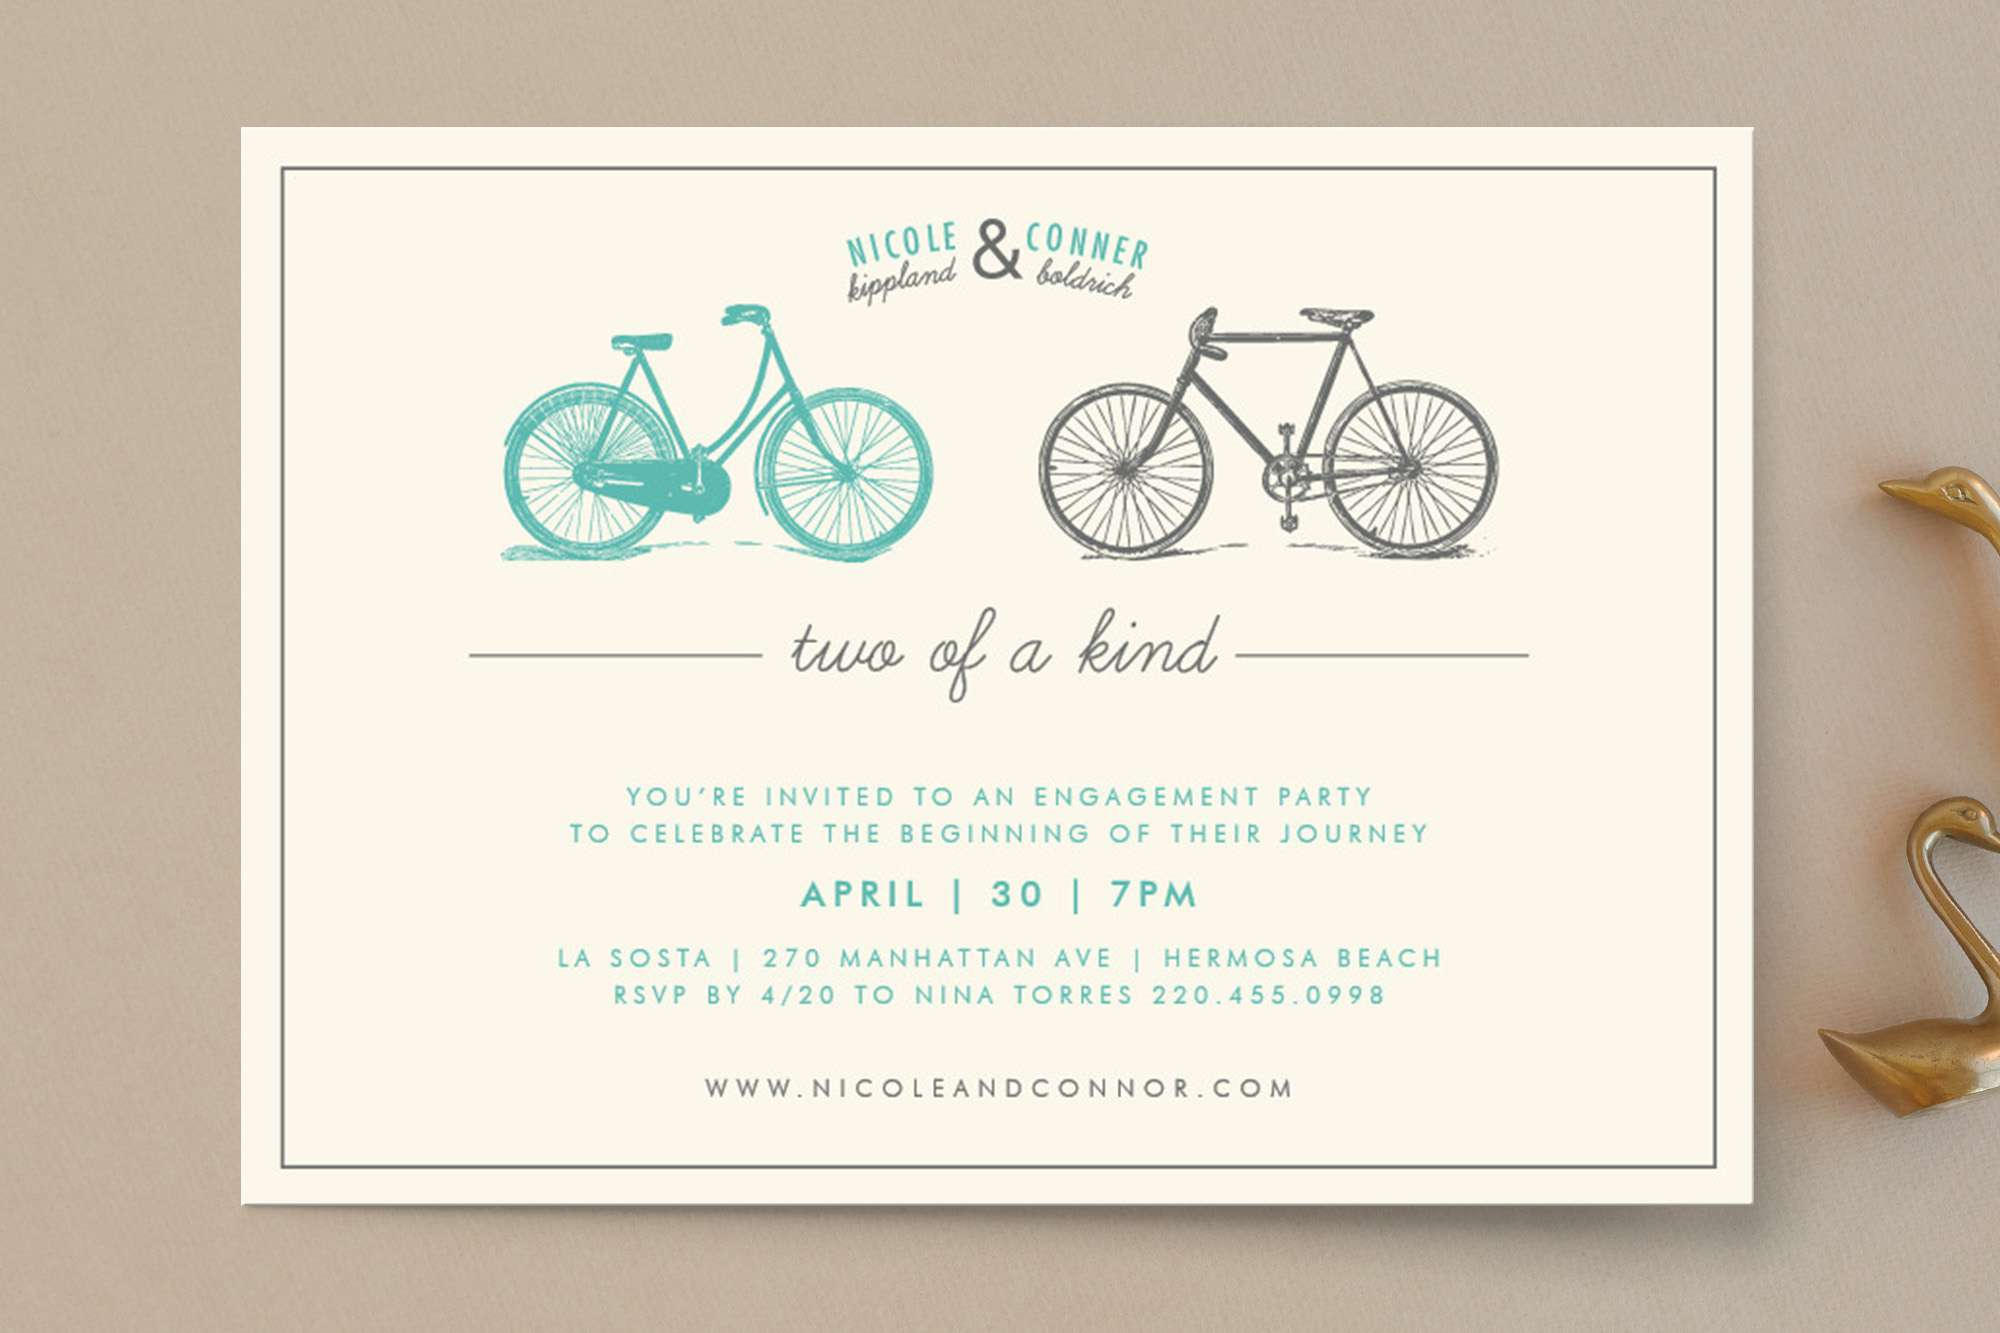 Two of a kind bicycle engagement party invitation